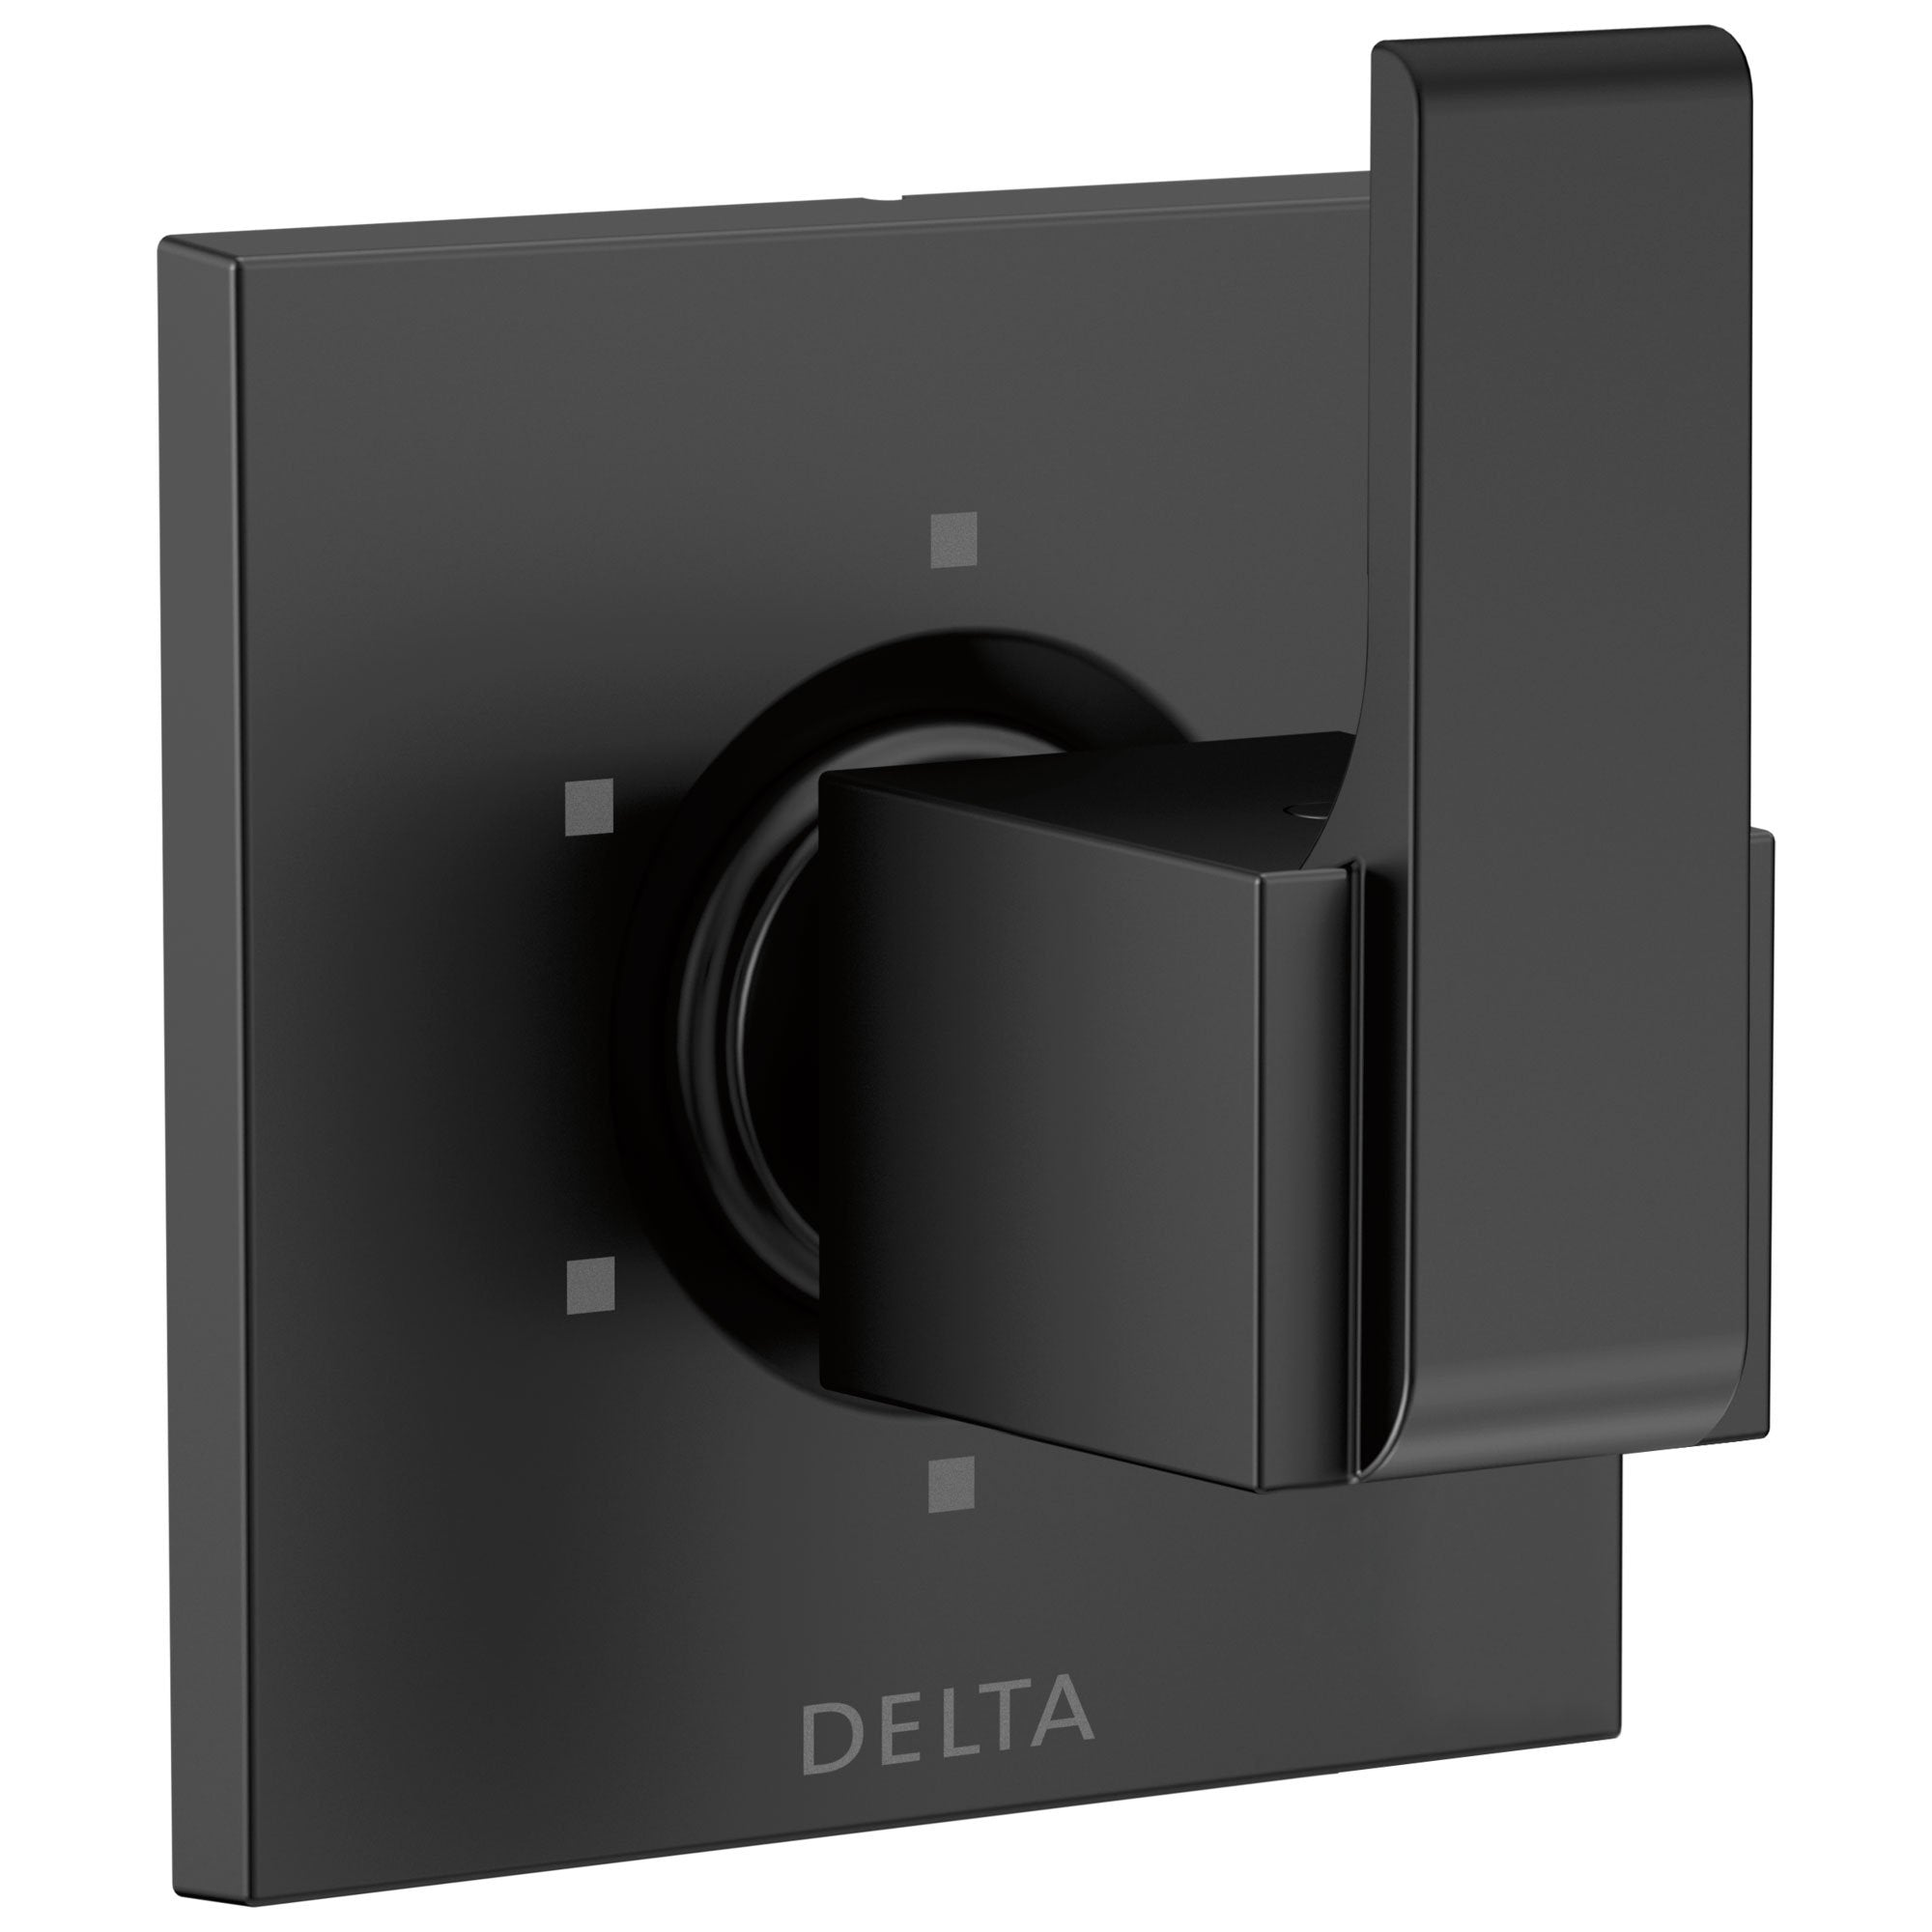 Delta Ara Collection Matte Black Finish Modern Square Lever Handle 6-Setting 3-Port Shower Diverter Includes Rough-in Valve D2548V